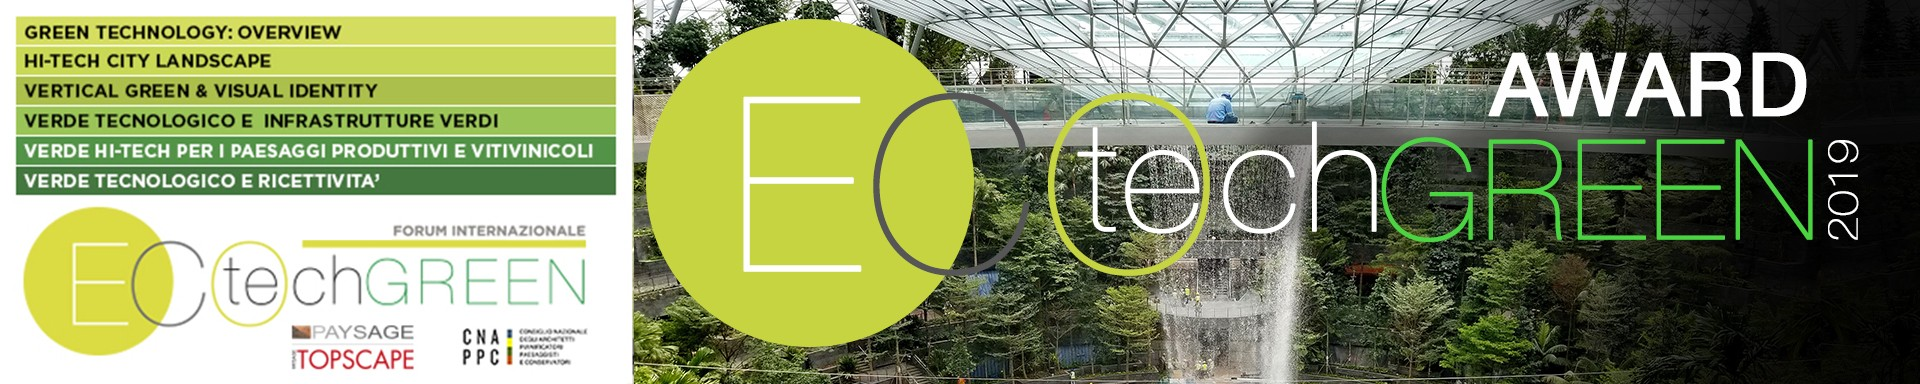 immagine header ECOtechGREEN 2019